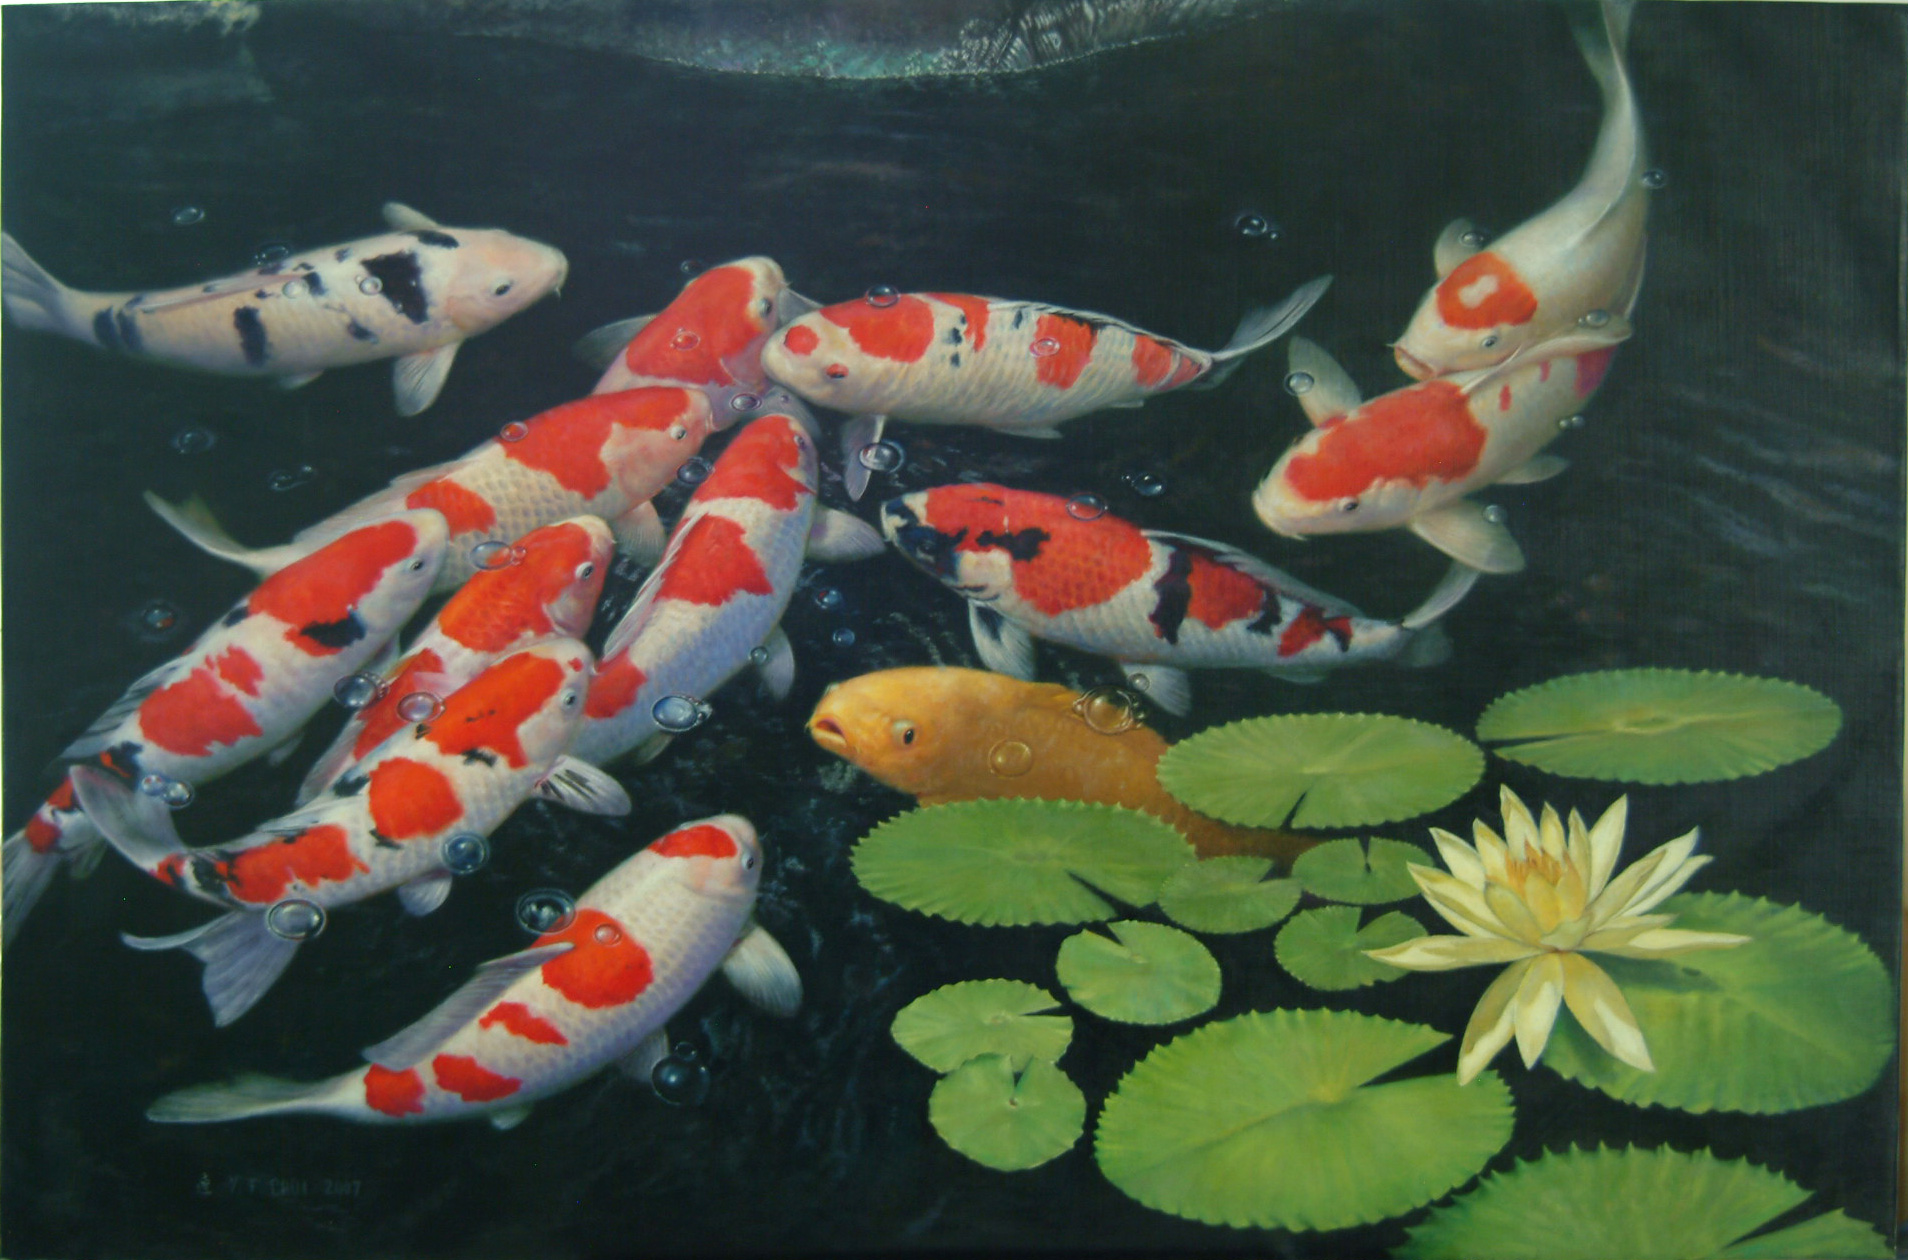 Koi Fish Pond Drawing at GetDrawings.com | Free for personal use Koi ...